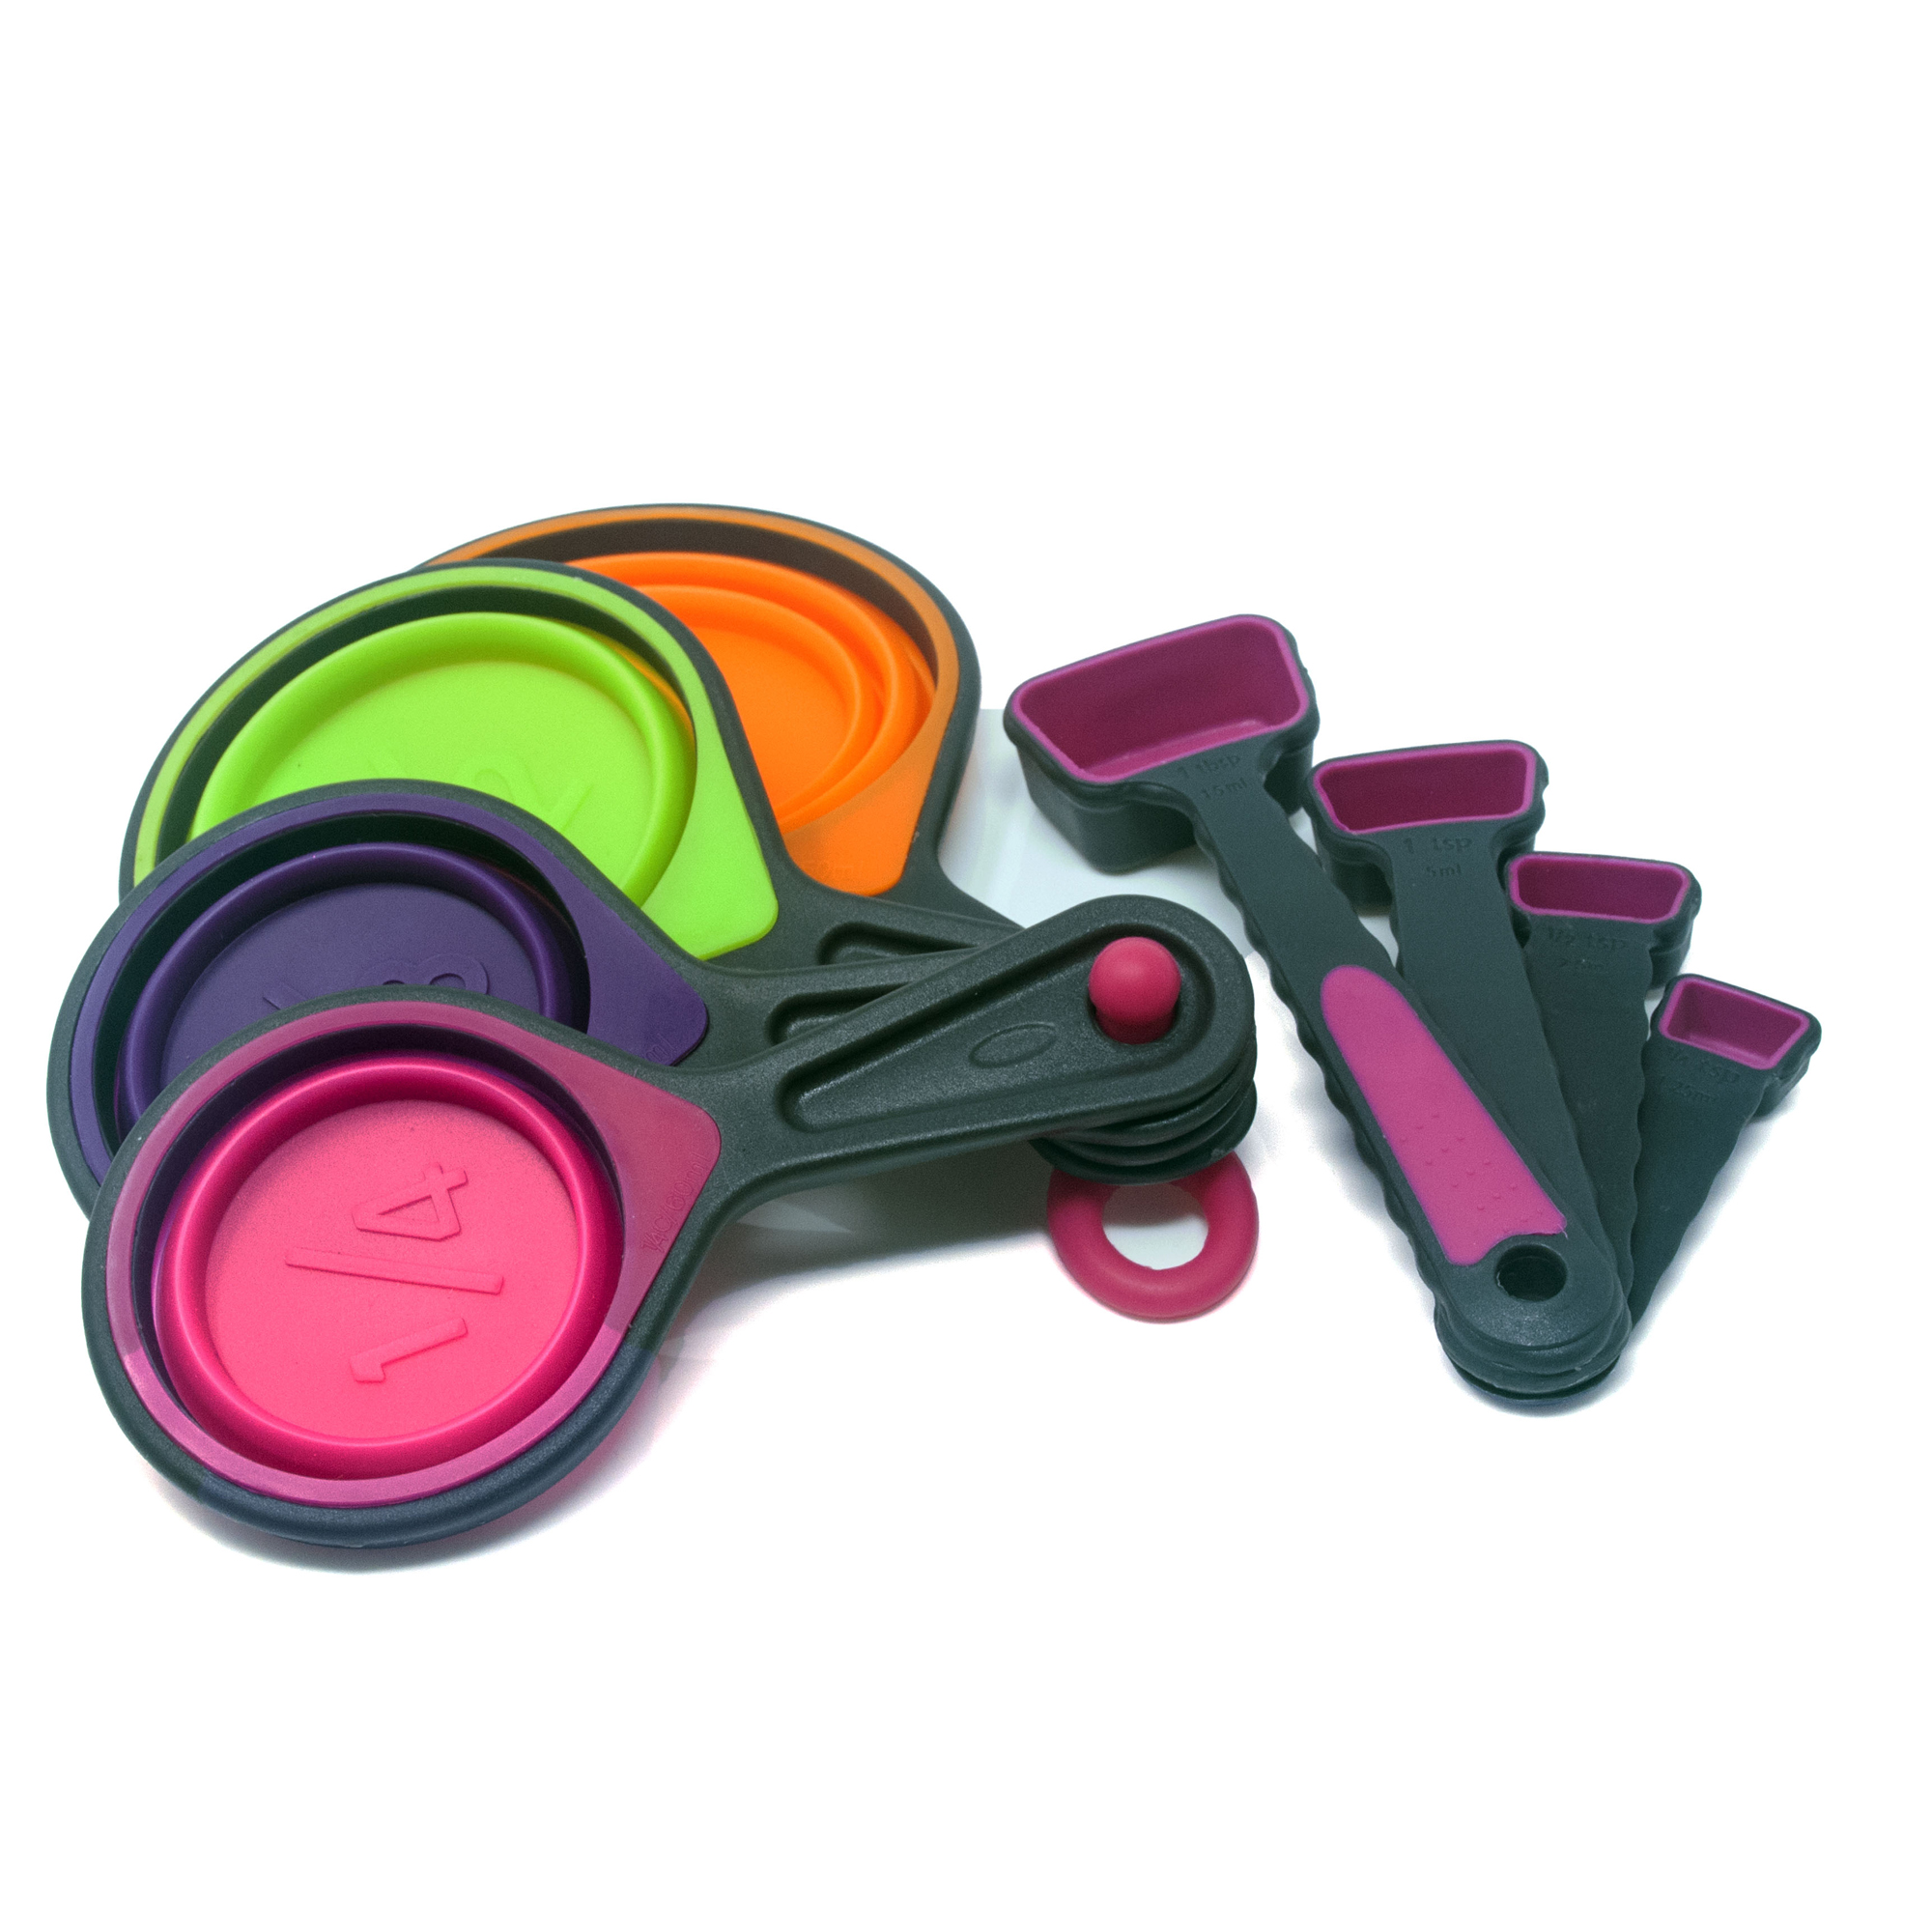 Collapsible Measuring Cups & Swivel Spoons - Pink